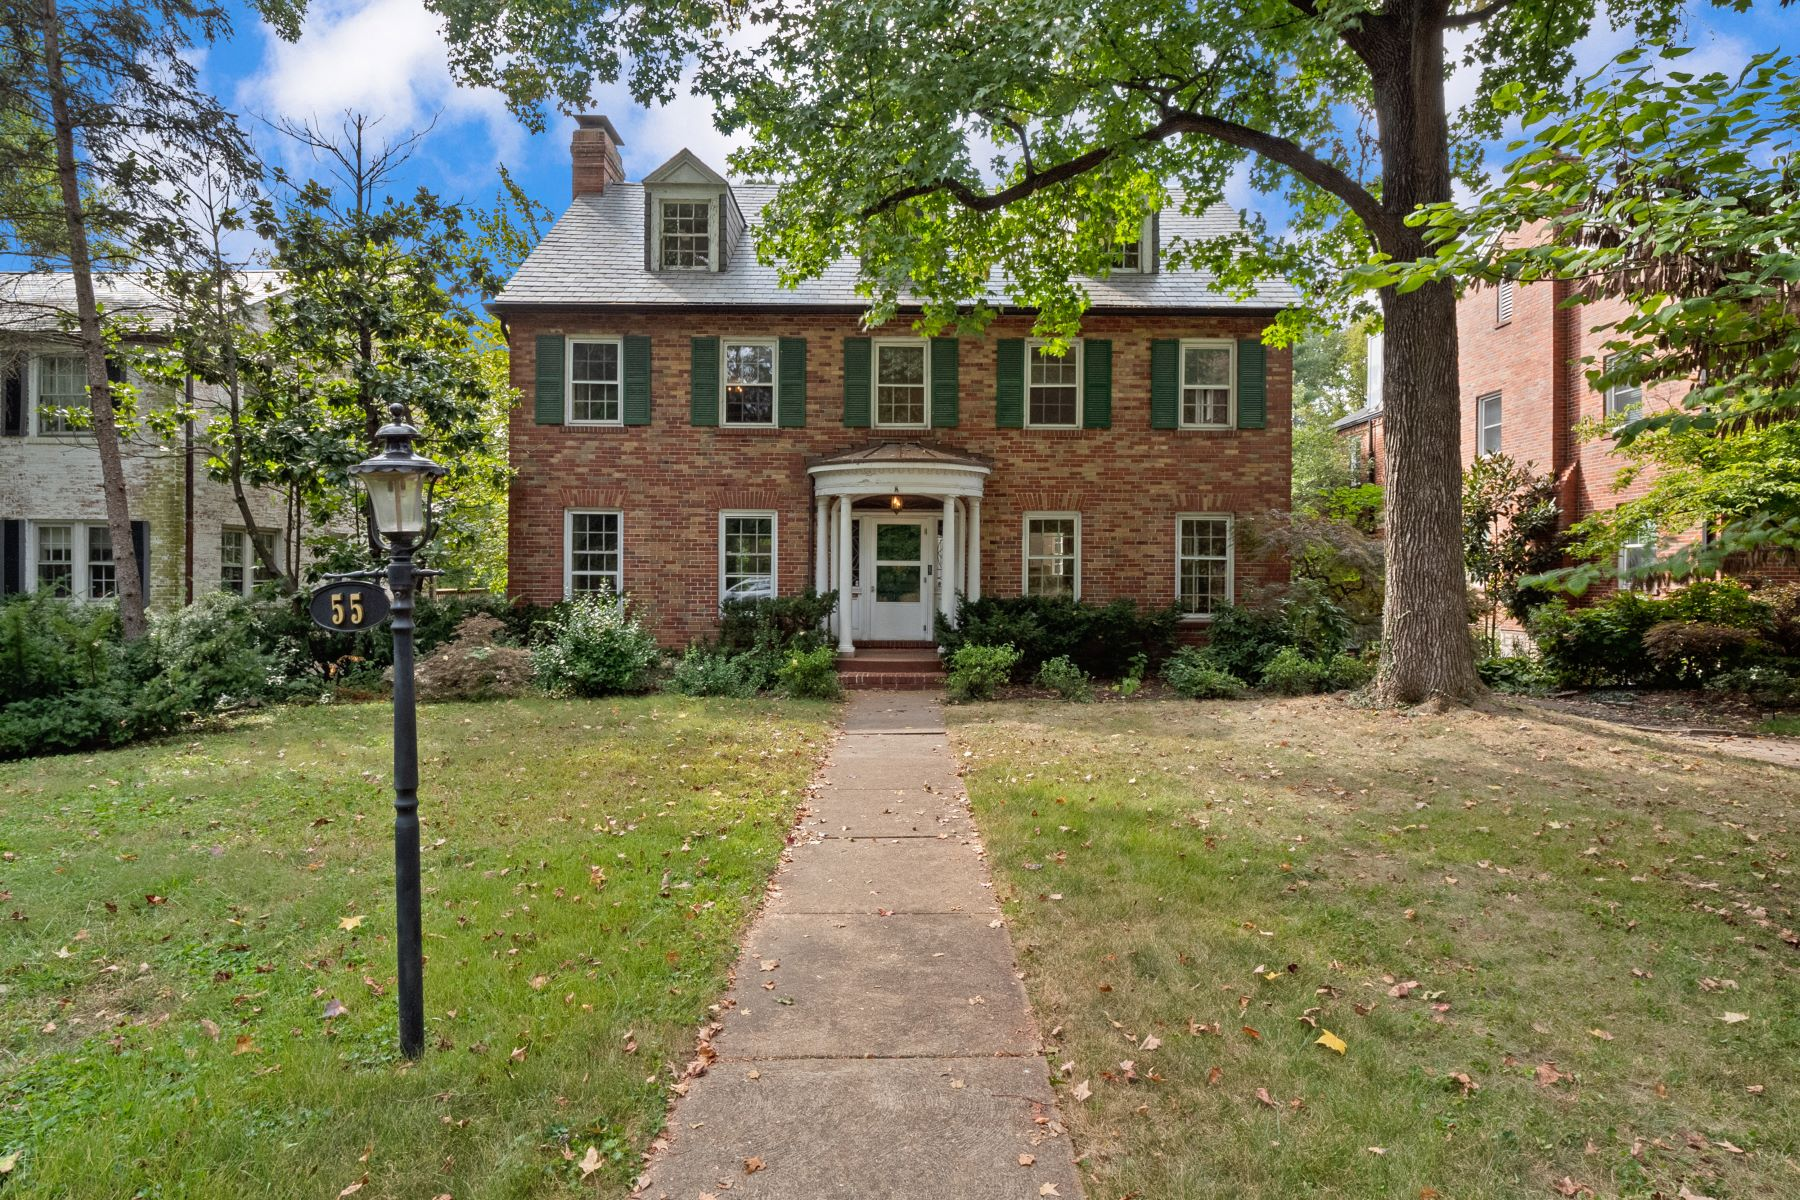 Single Family Homes for Sale at Where Love Prevails and Charm Abounds 55 Ridgemoor Drive Clayton, Missouri 63105 United States